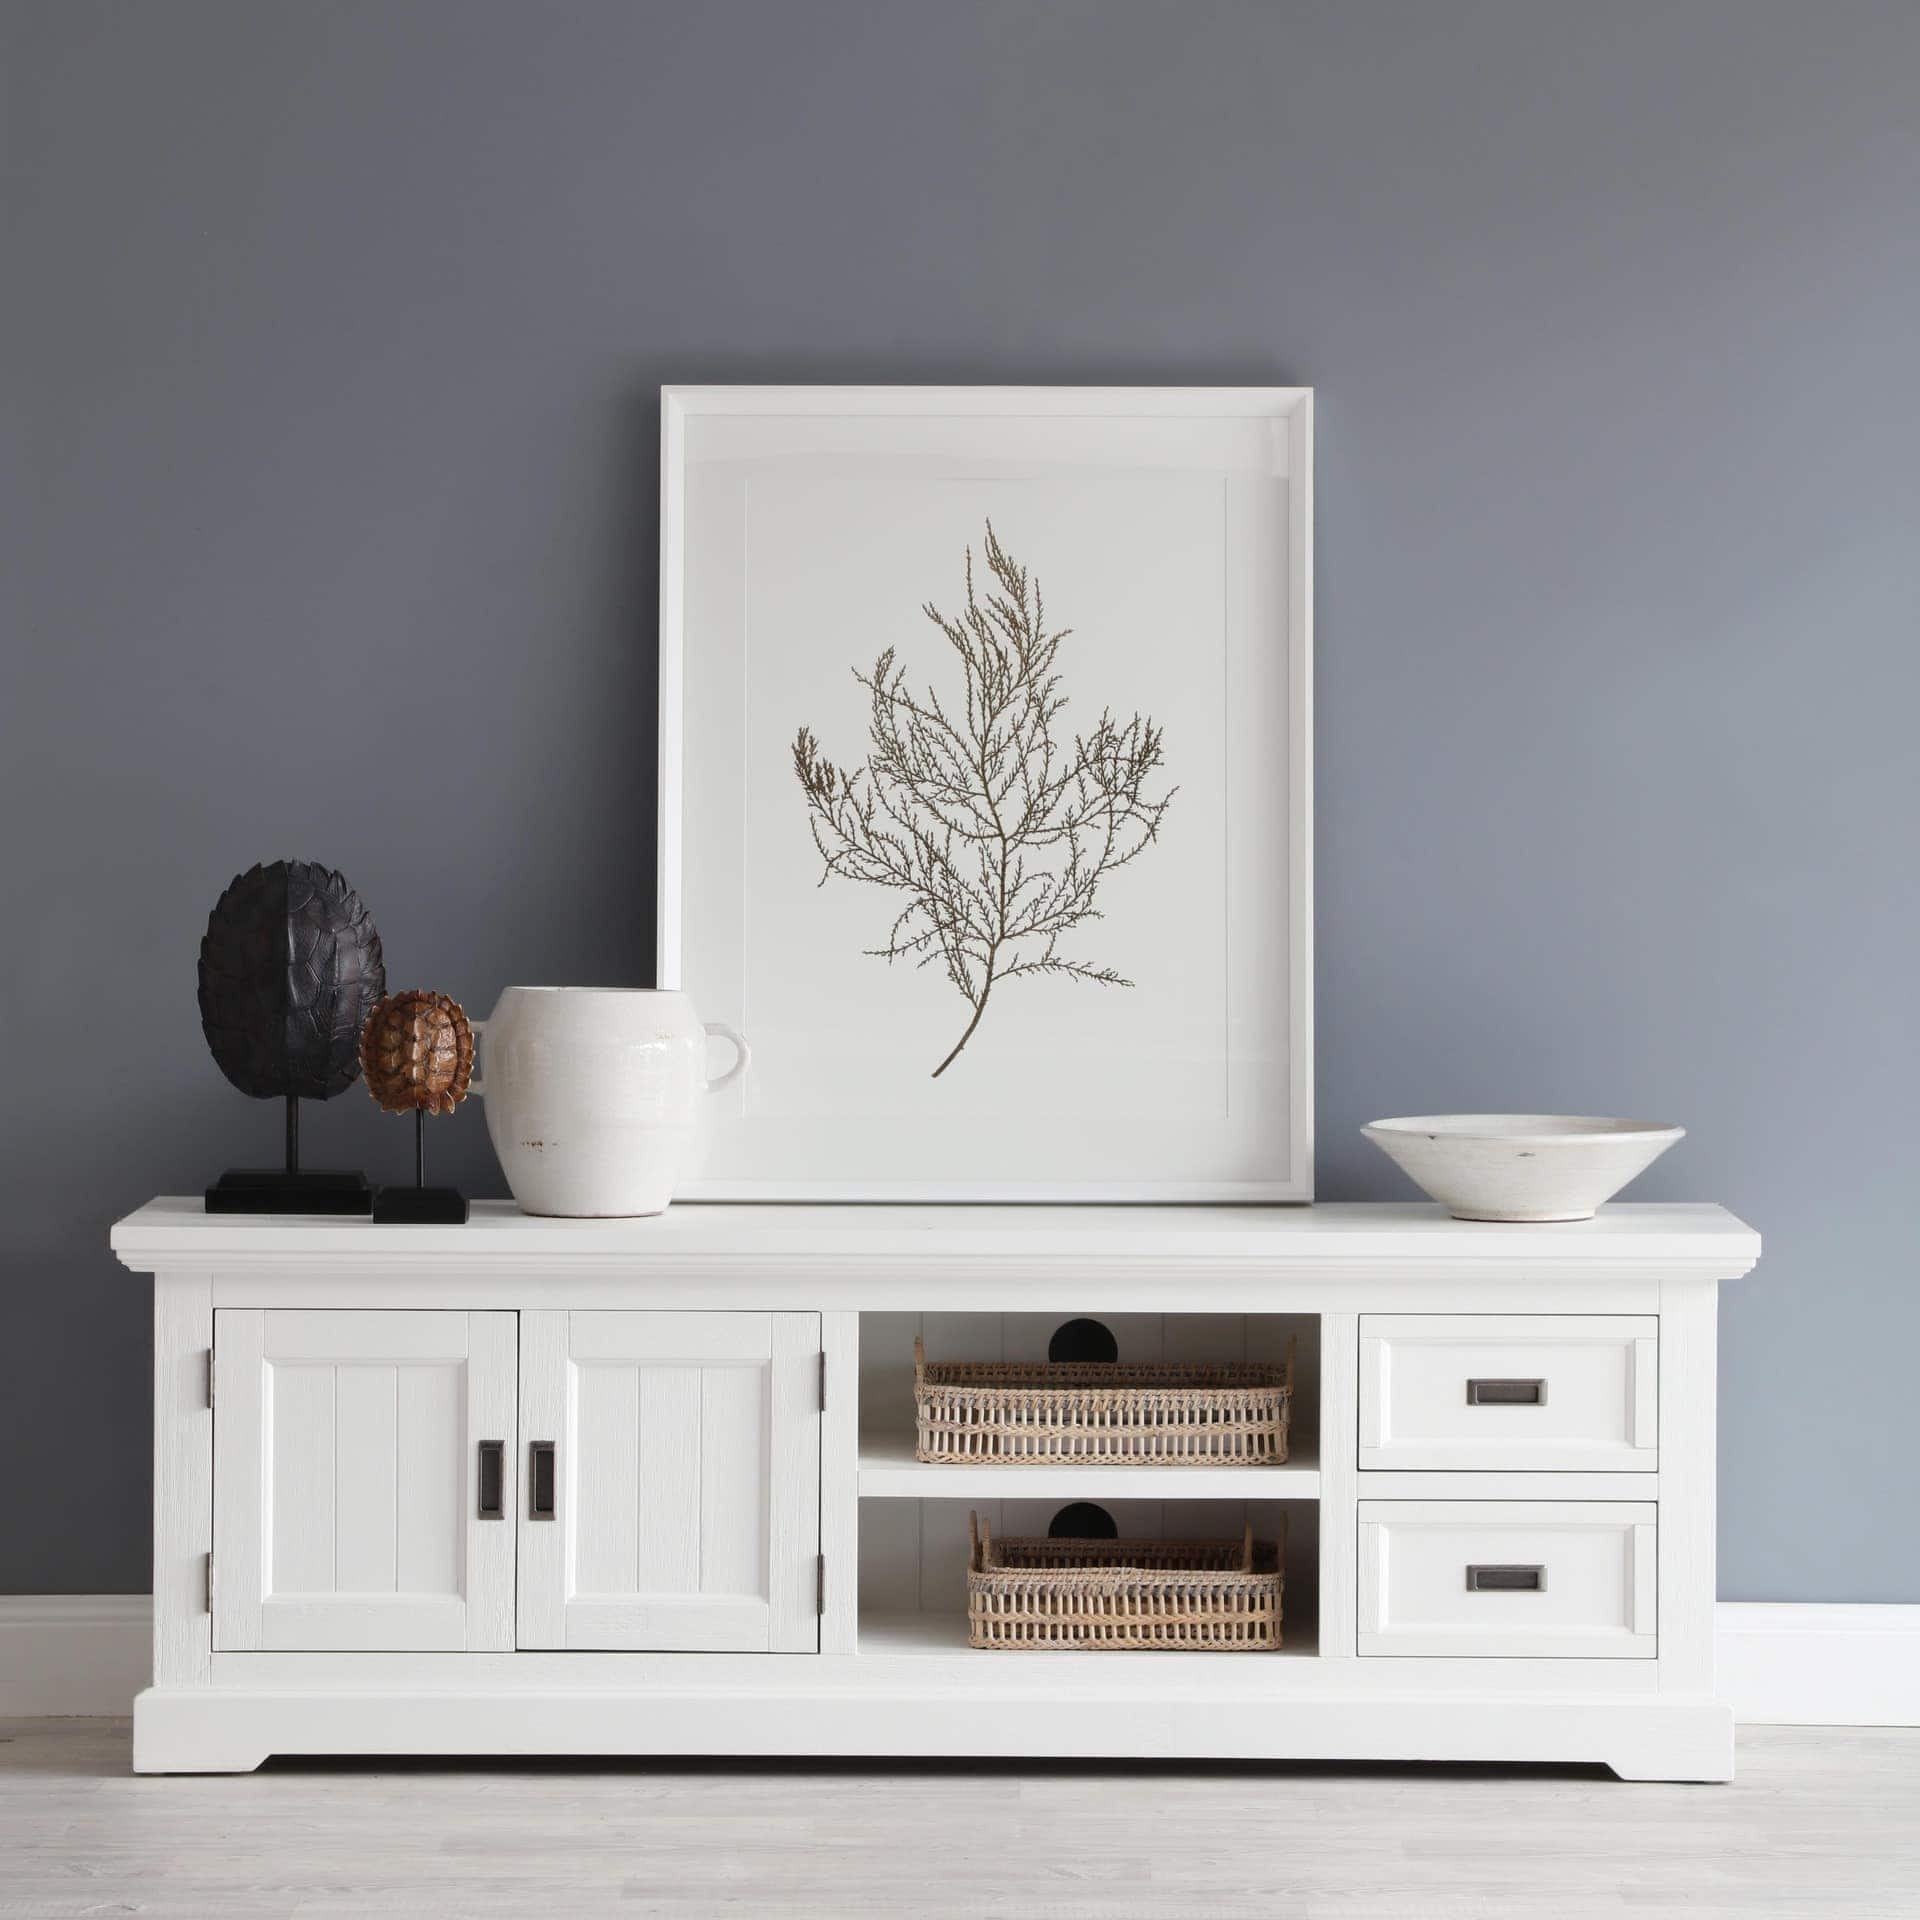 Hamptons furniture and homewares australia Entertainment Unit from oz design